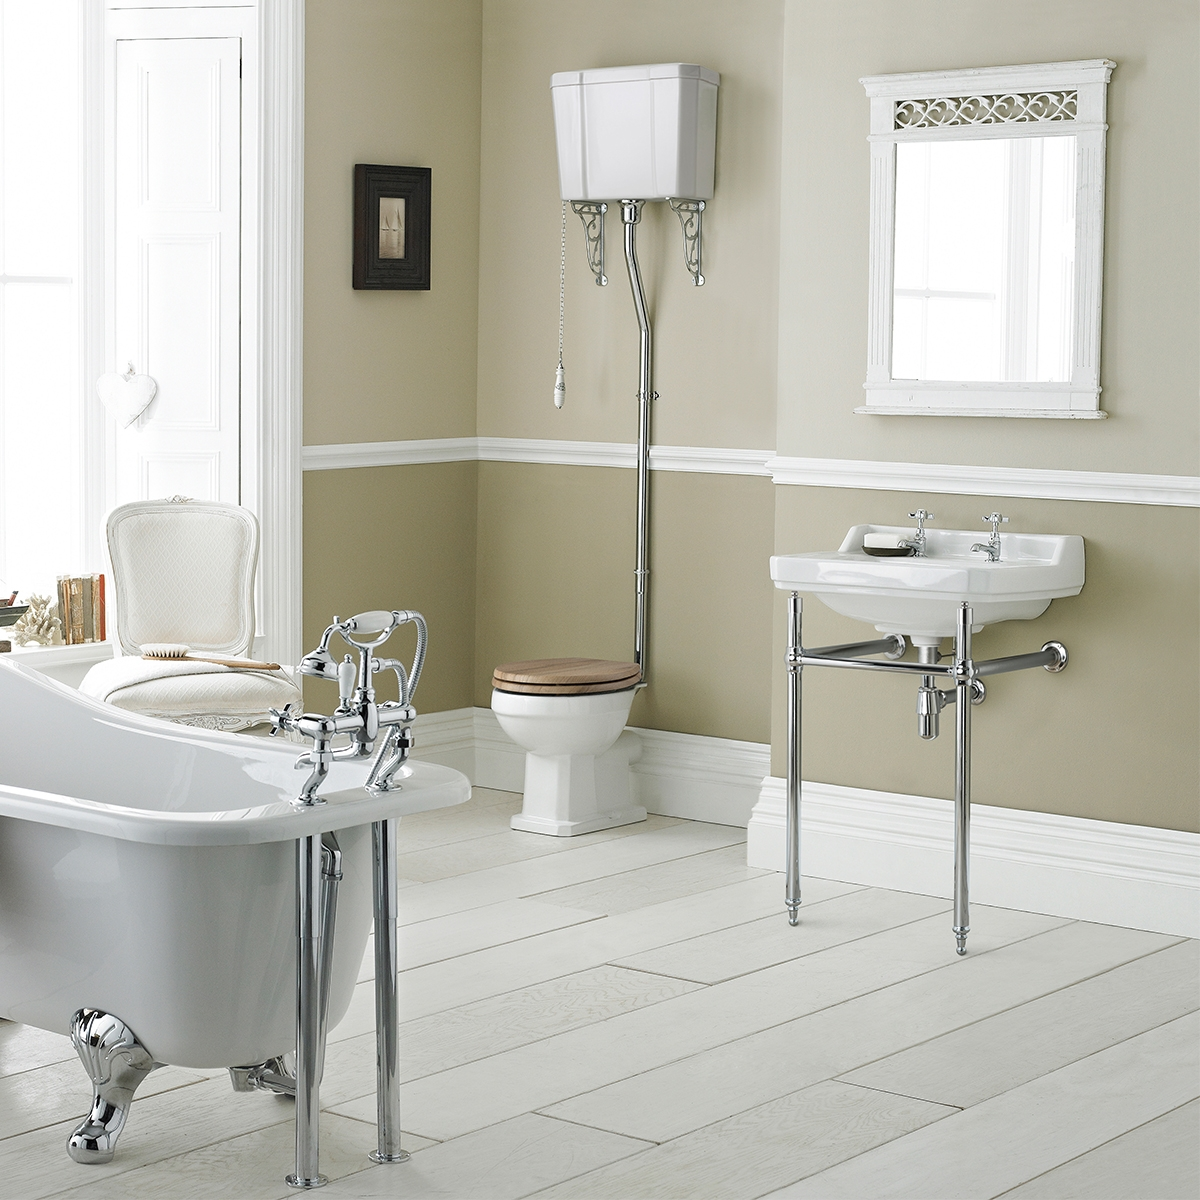 Premier Carlton High Level Toilet Pan and Cistern (excluding Flush Pipe, Pull Chain and Seat)